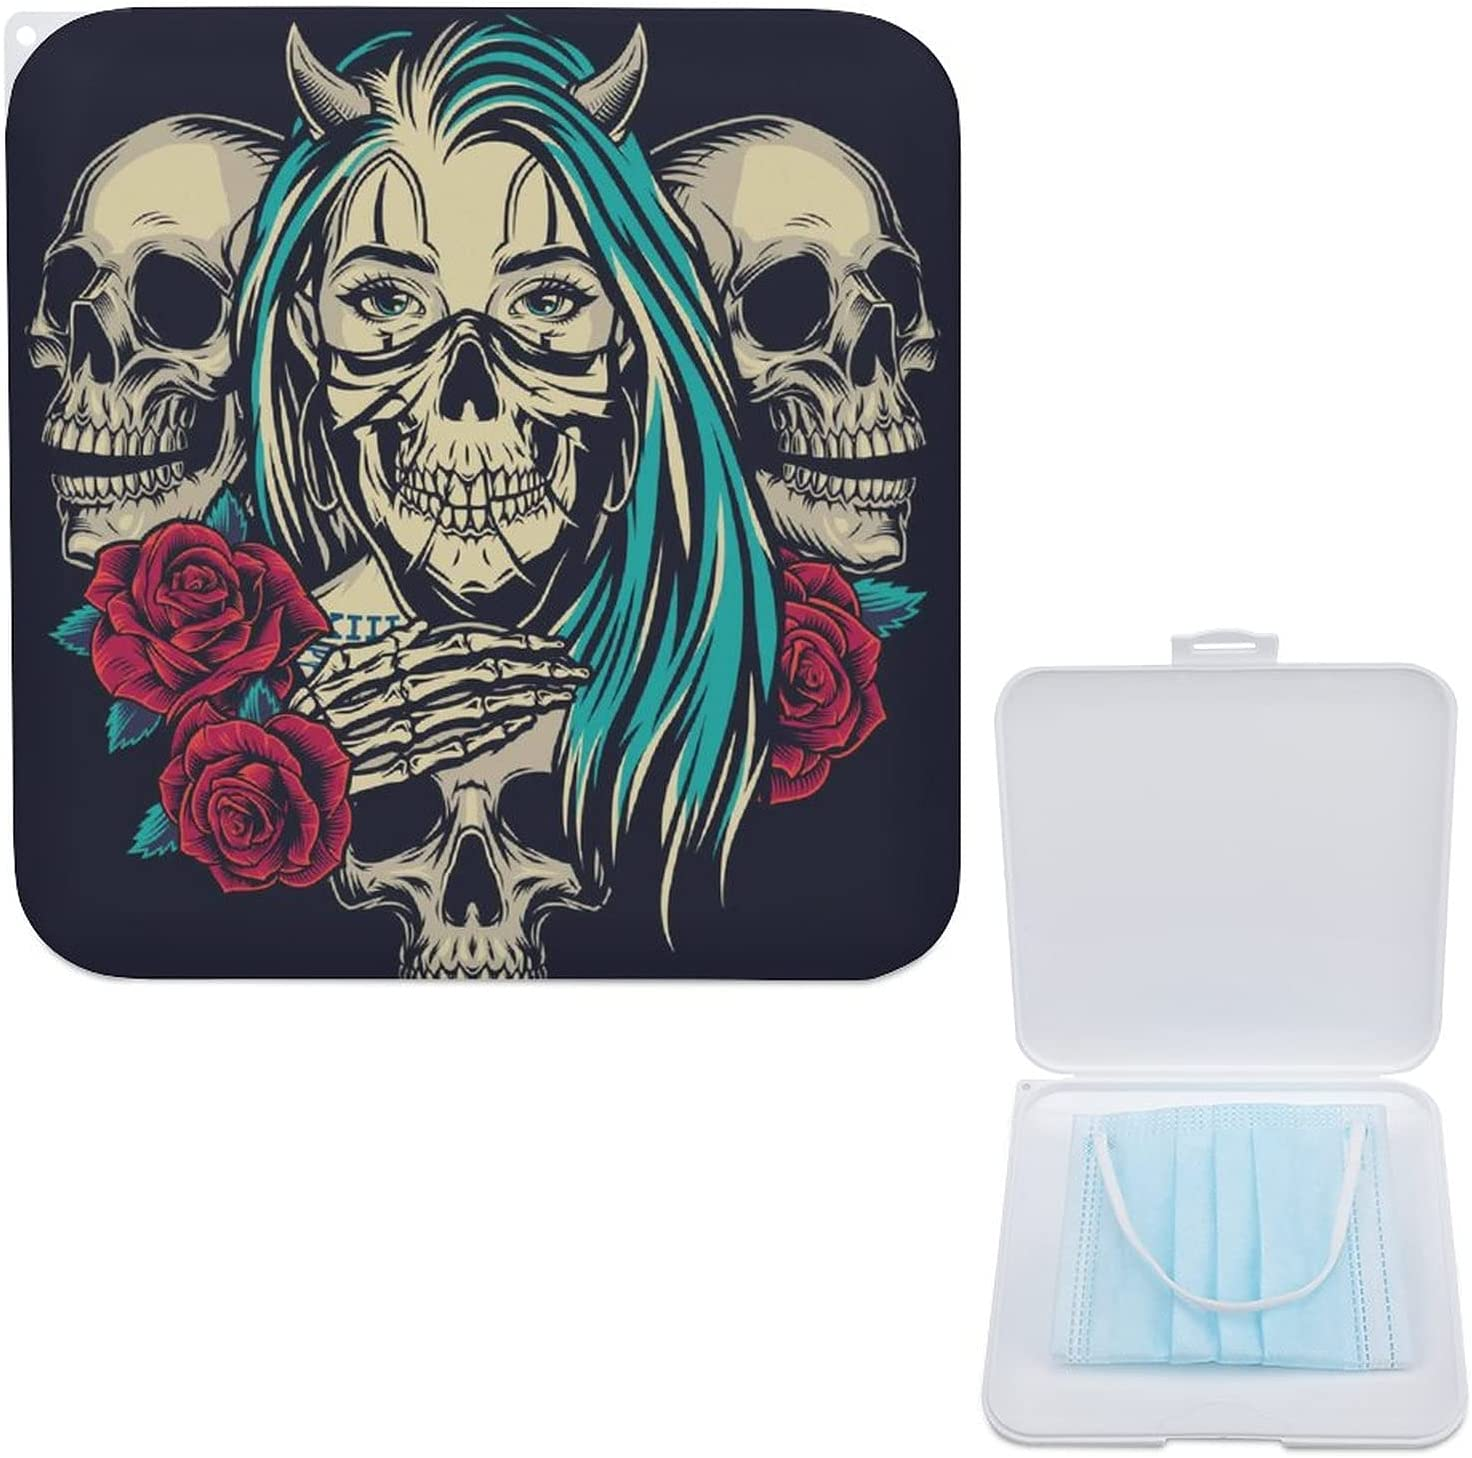 Mask Storage Box-Portable Can Be Ba Put Wallets Mail Ranking TOP14 order cheap In